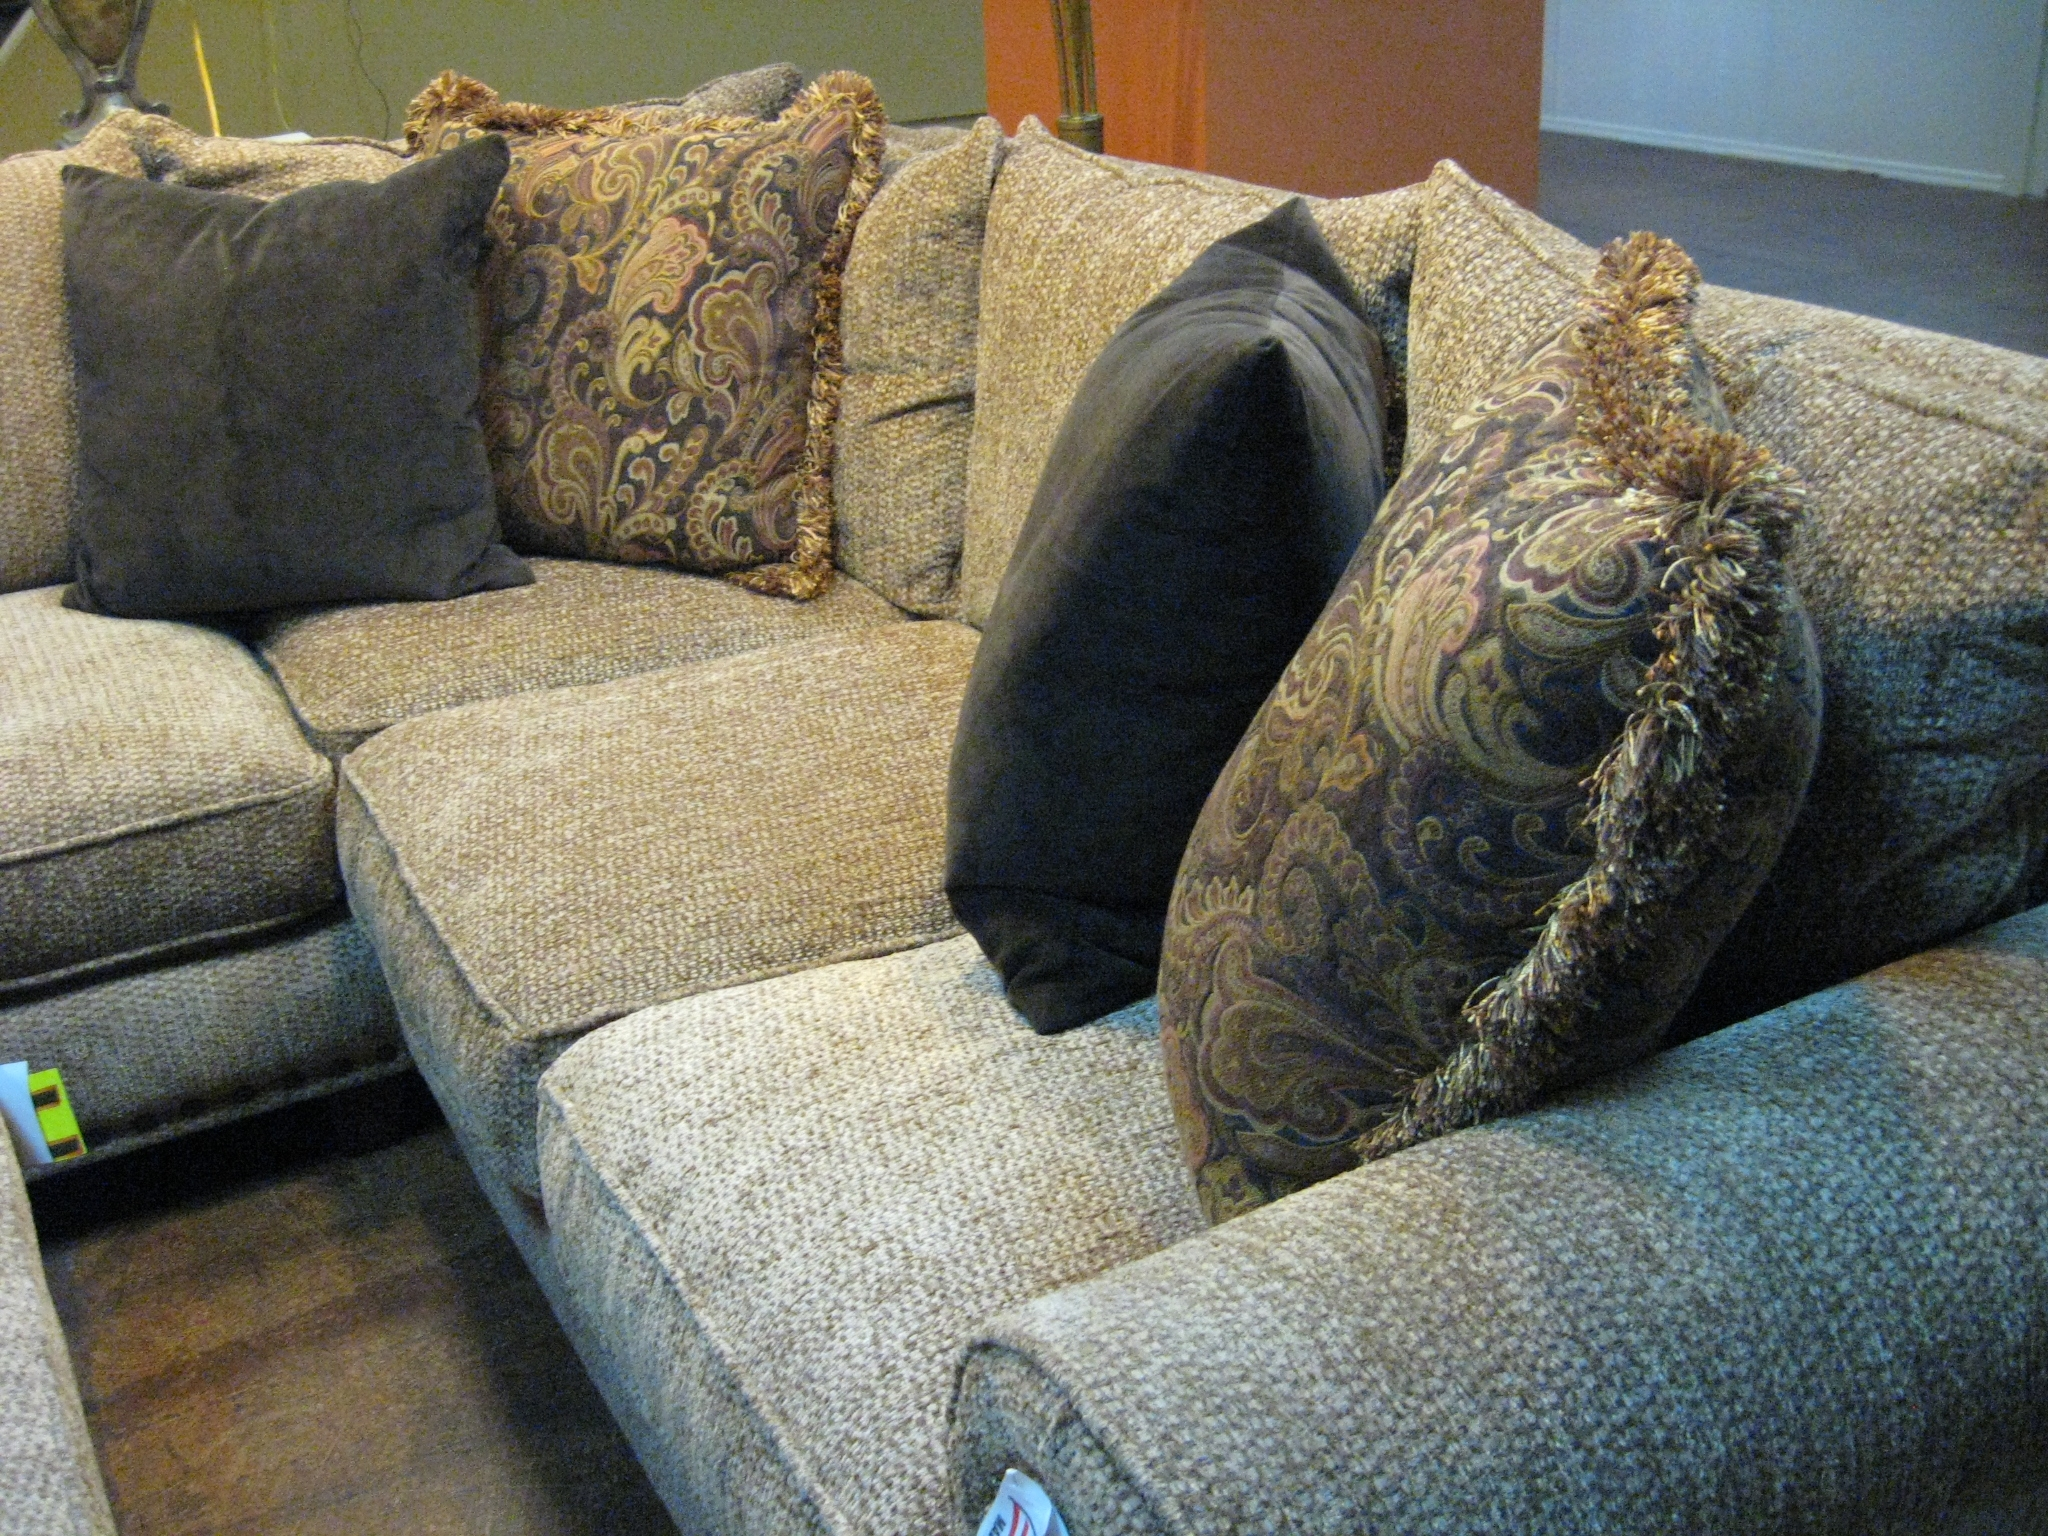 Robert Michael Sectional Sofa Phoenix Arizona Discount Outlet Regarding Down Filled Sectional Sofas (Image 10 of 15)